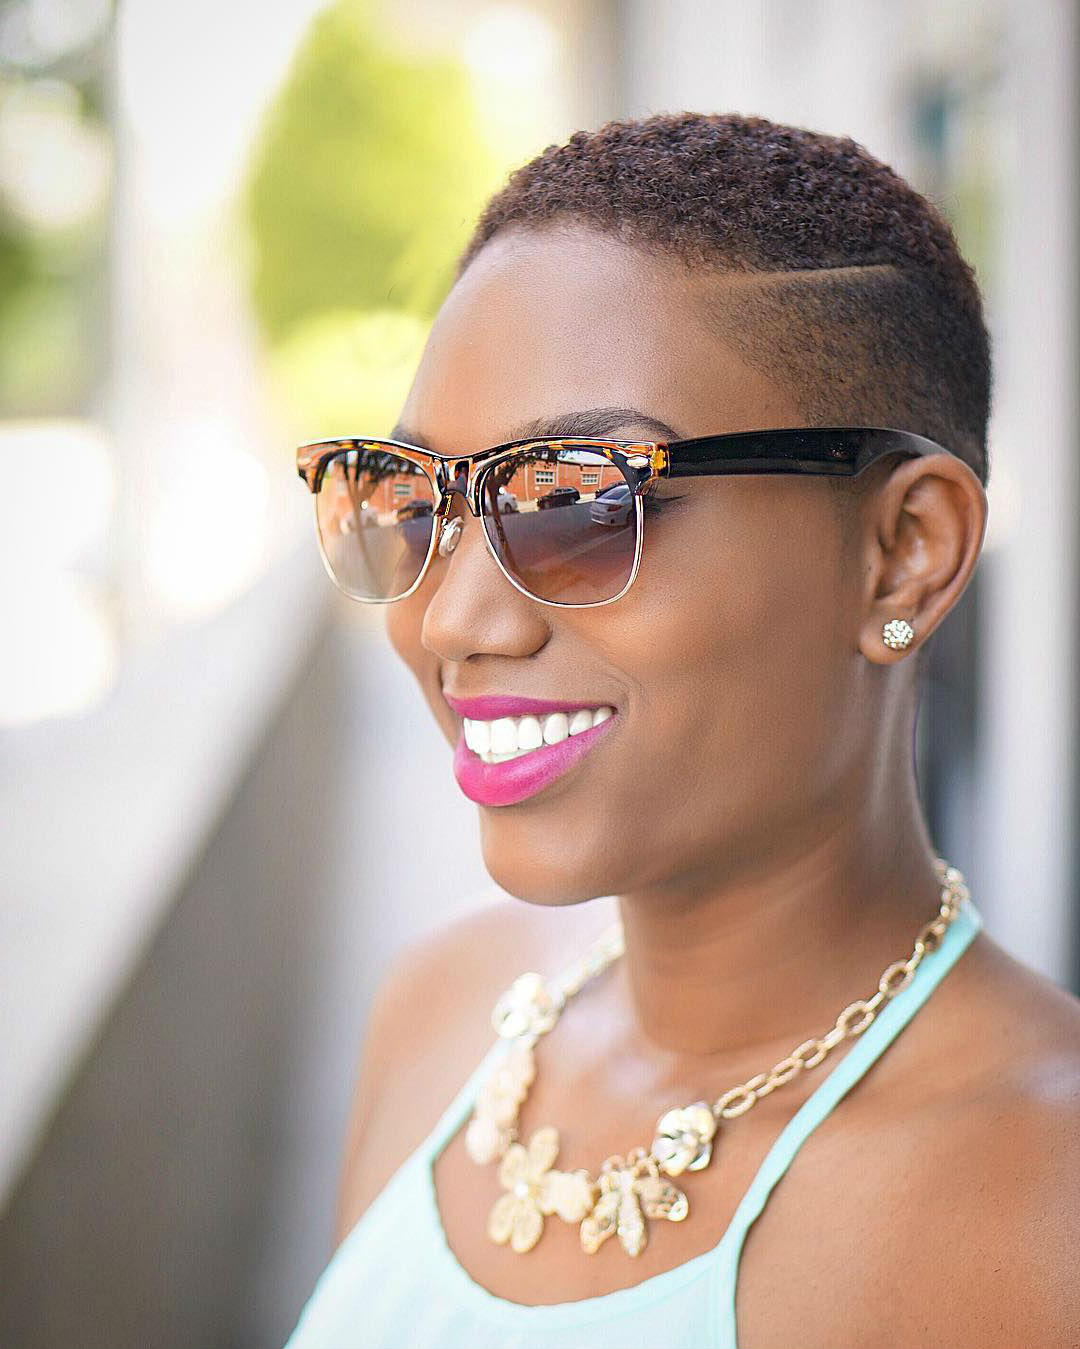 Short Hairstyles For African Women – Hairstyles 2018 Intended For African Women Short Hairstyles (View 12 of 25)